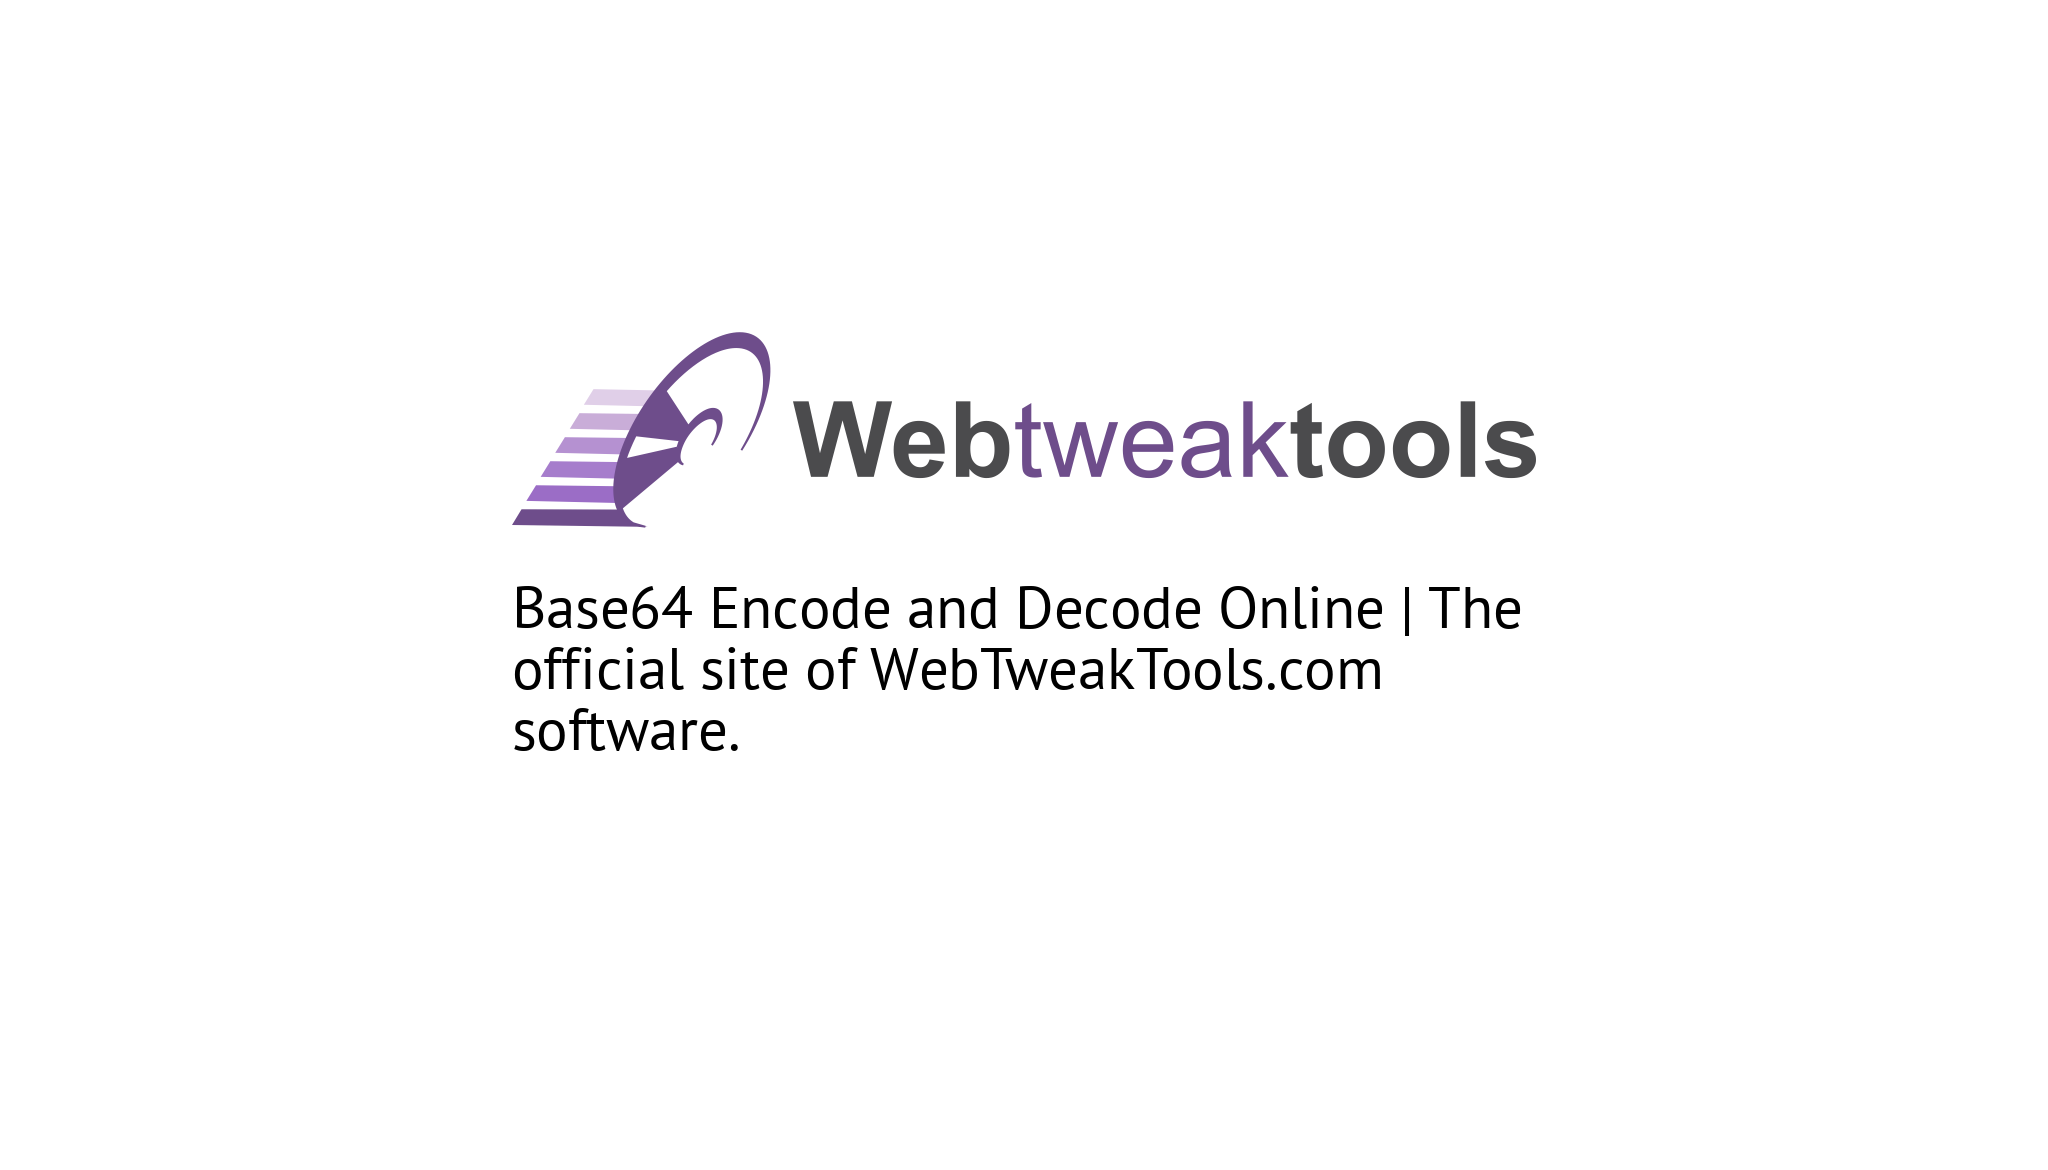 Base64 Encode and Decode Online | Services